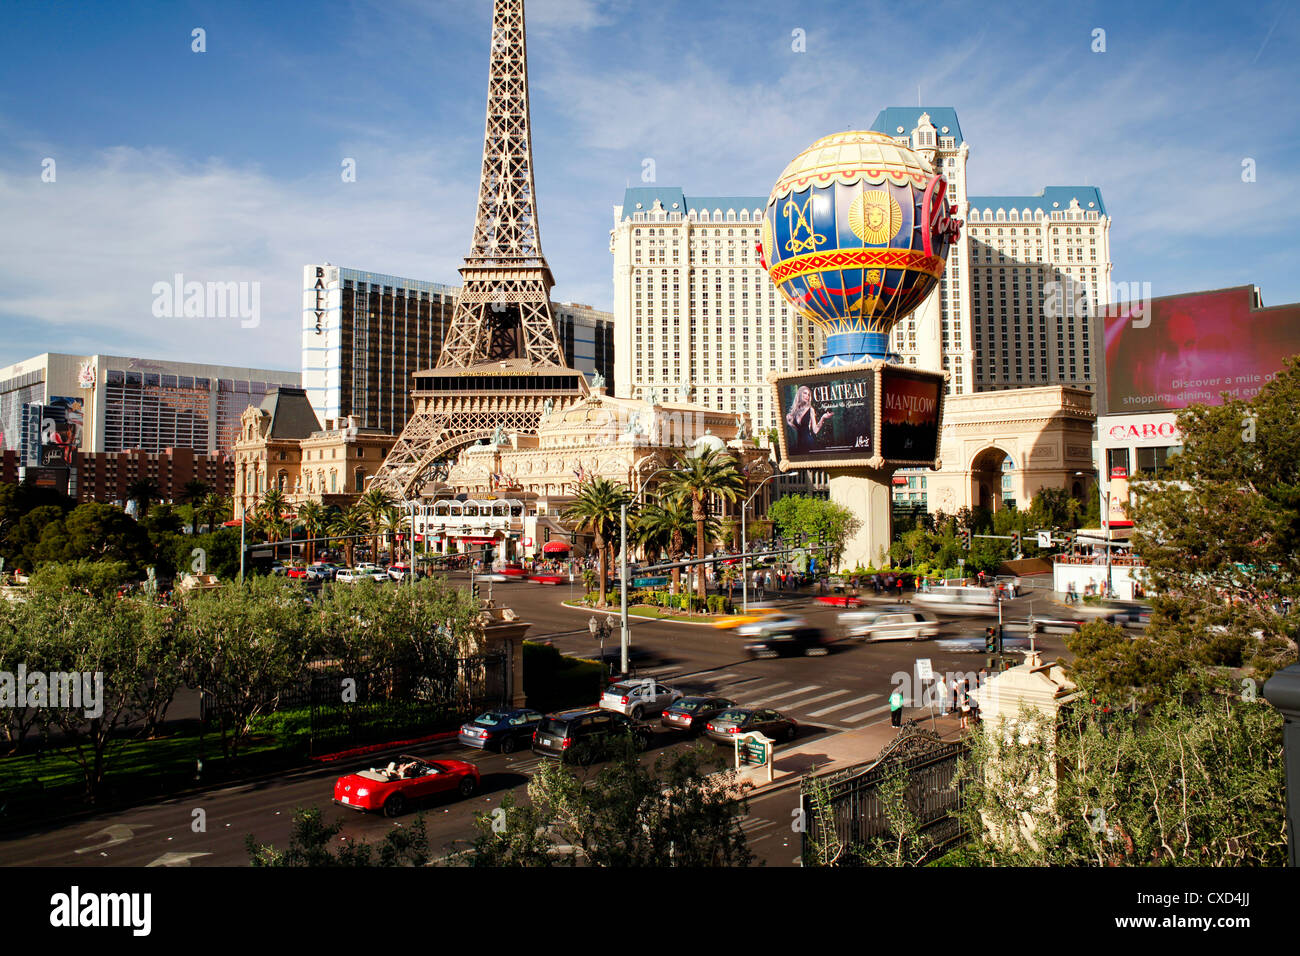 Paris Casino sur le Strip, Las Vegas, Nevada, États-Unis d'Amérique, Amérique du Nord Photo Stock